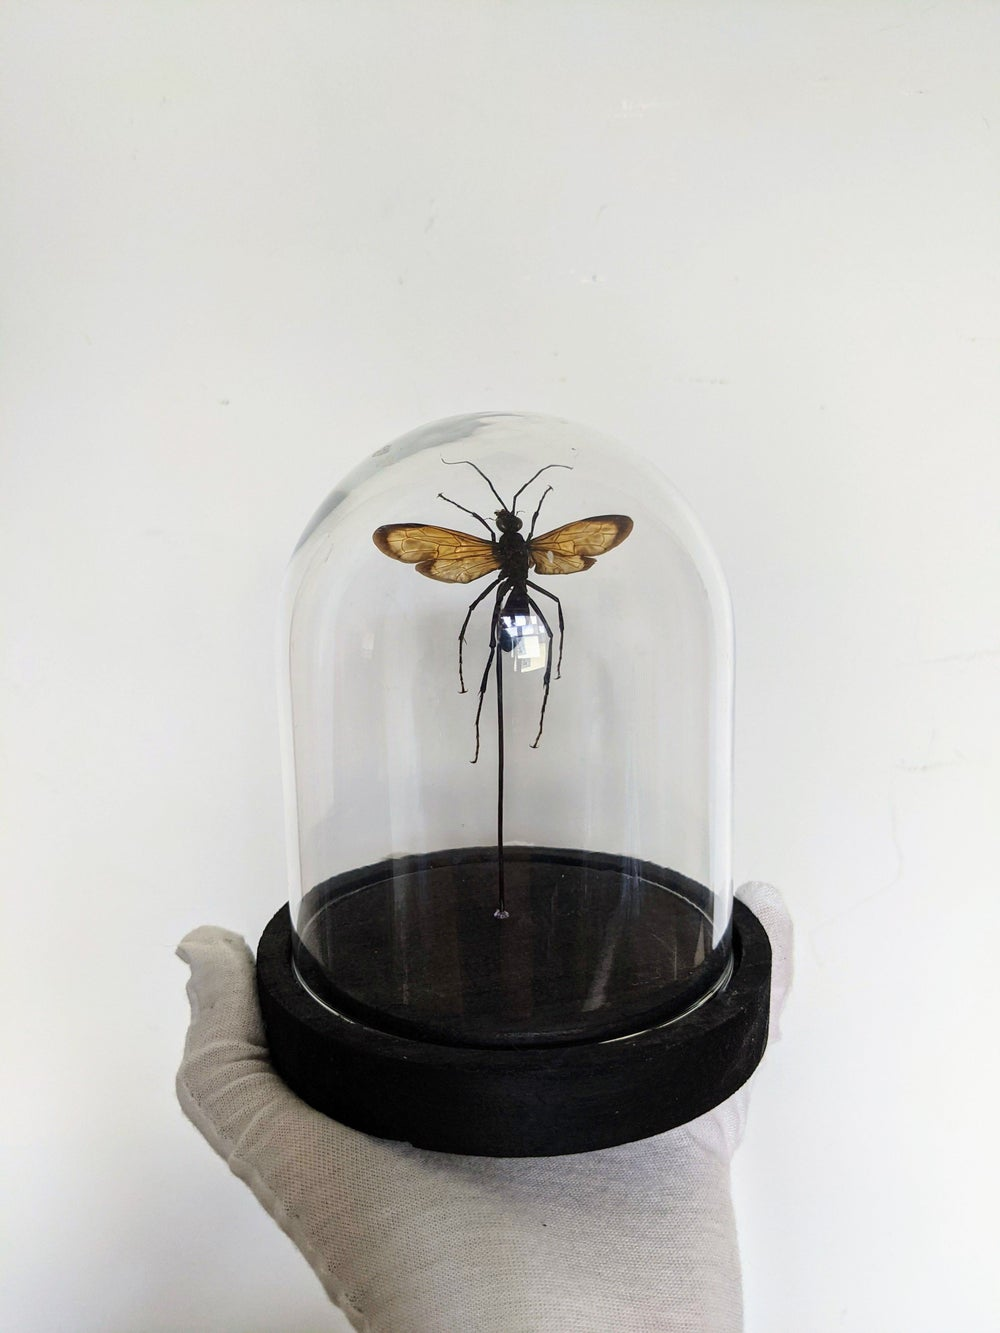 Giant Wasp Dome